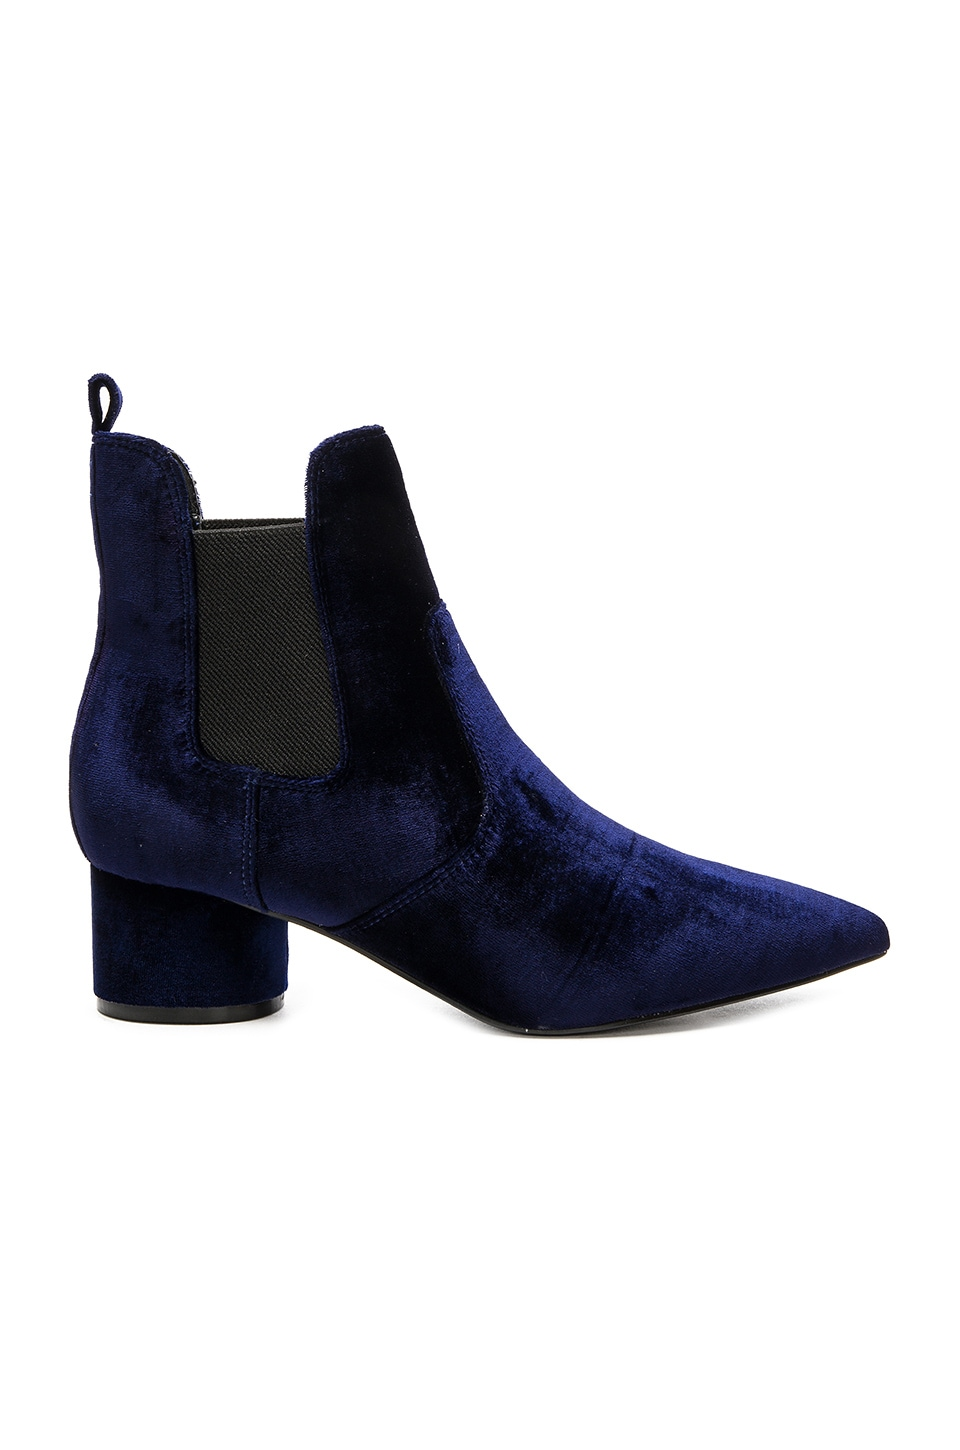 KENDALL + KYLIE Logan 2 Bootie in Dark Blue Fabric